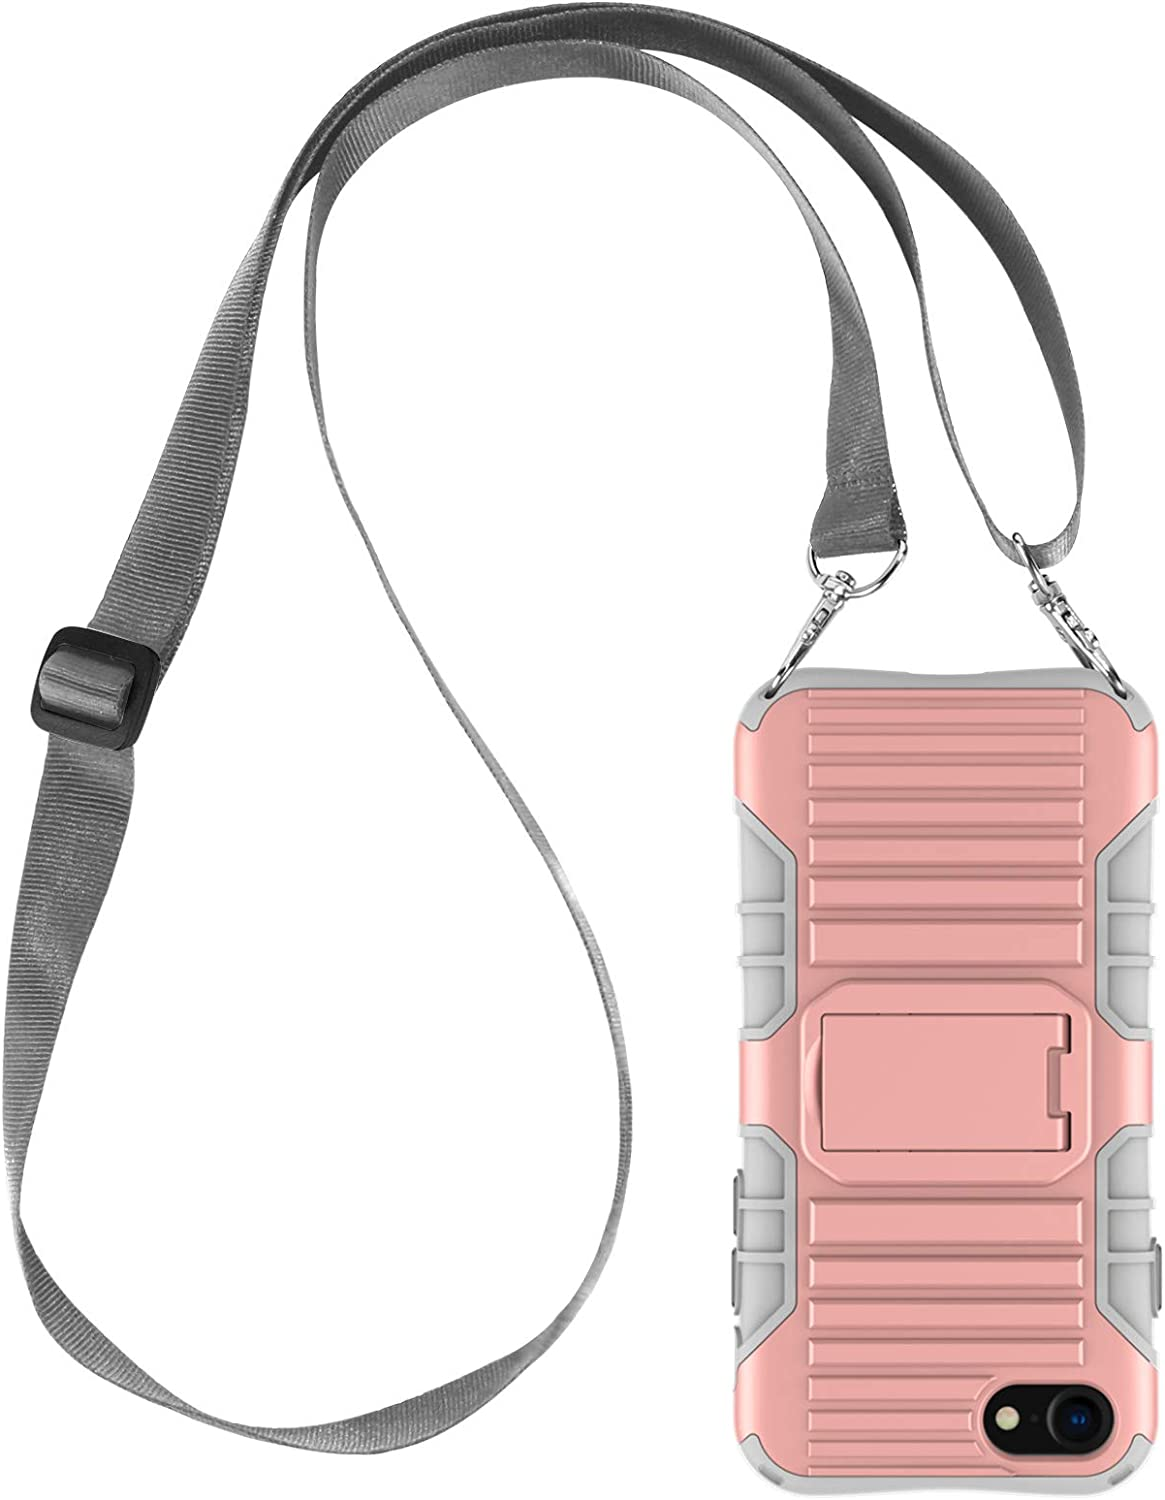 E-Tree Crossbody Lanyard Case for iPhone SE 2020/iPhone 7/iPhone 8 with Kickstand, Shockproof Dual Layered, Anti-Lost Detachable Necklace Strap for Kids and Outdoors, etc-Pink